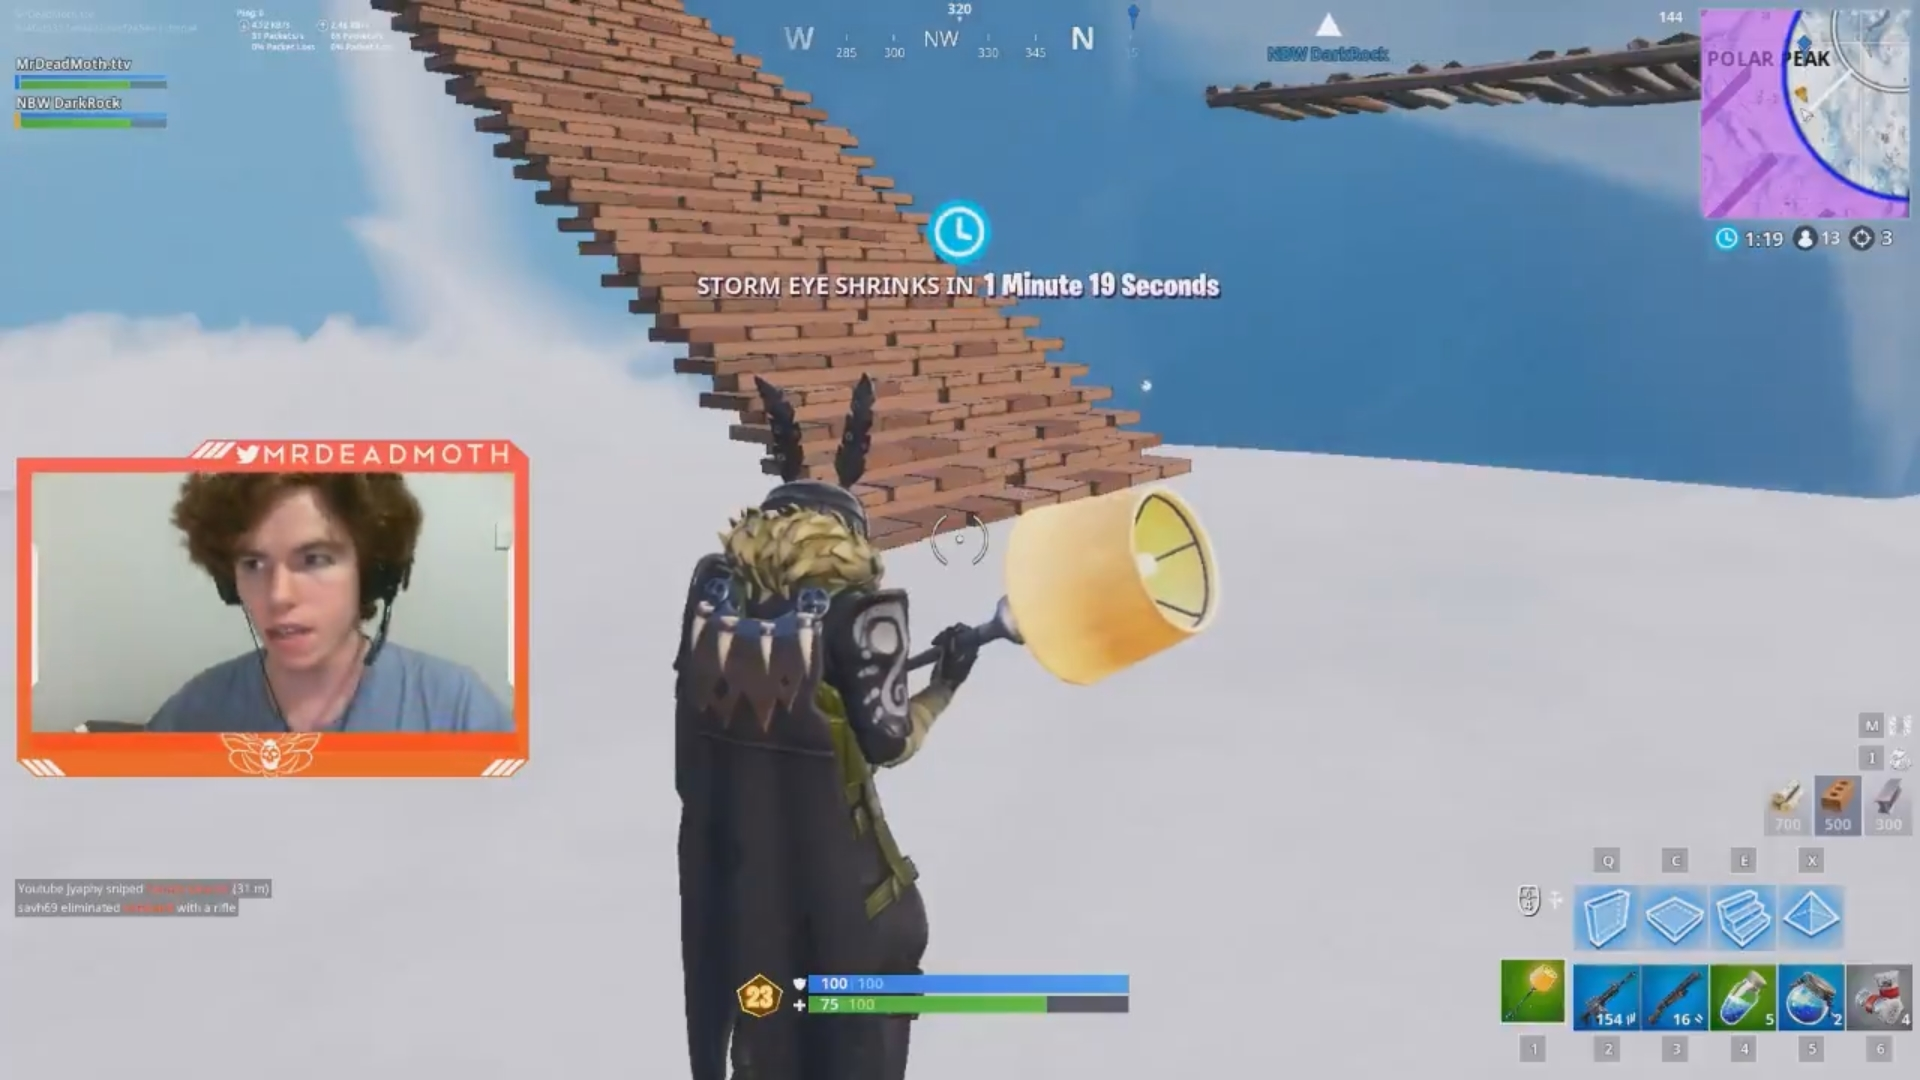 Fortnite gamer charged after alleged domestic violence assault captured on livestream